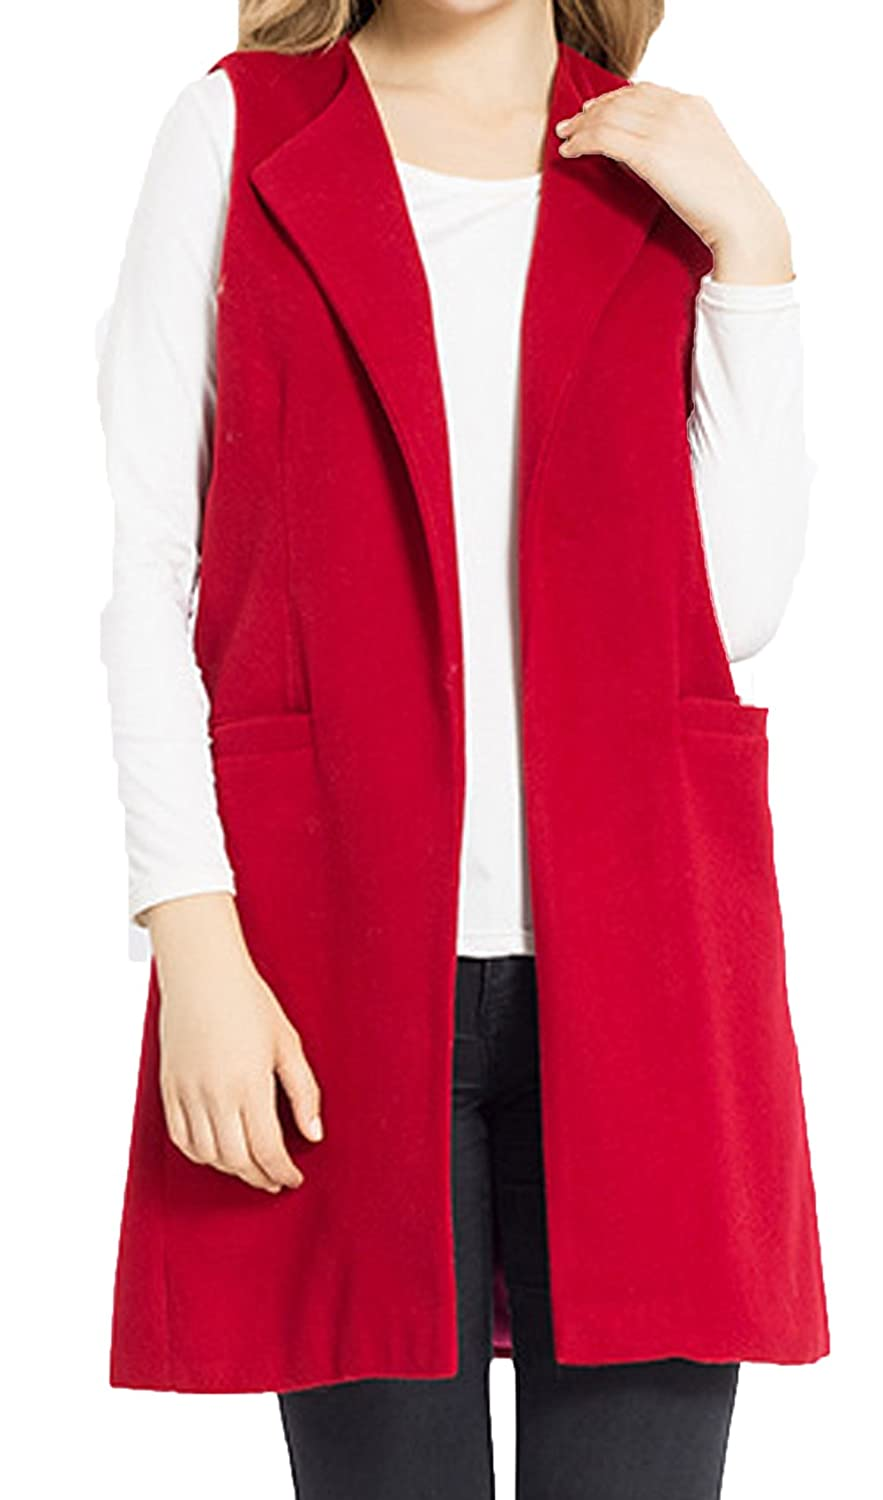 JOKHOO Women's Wool Blend Sleeveless Long Vest Jacket Longline Slim Waistcoat